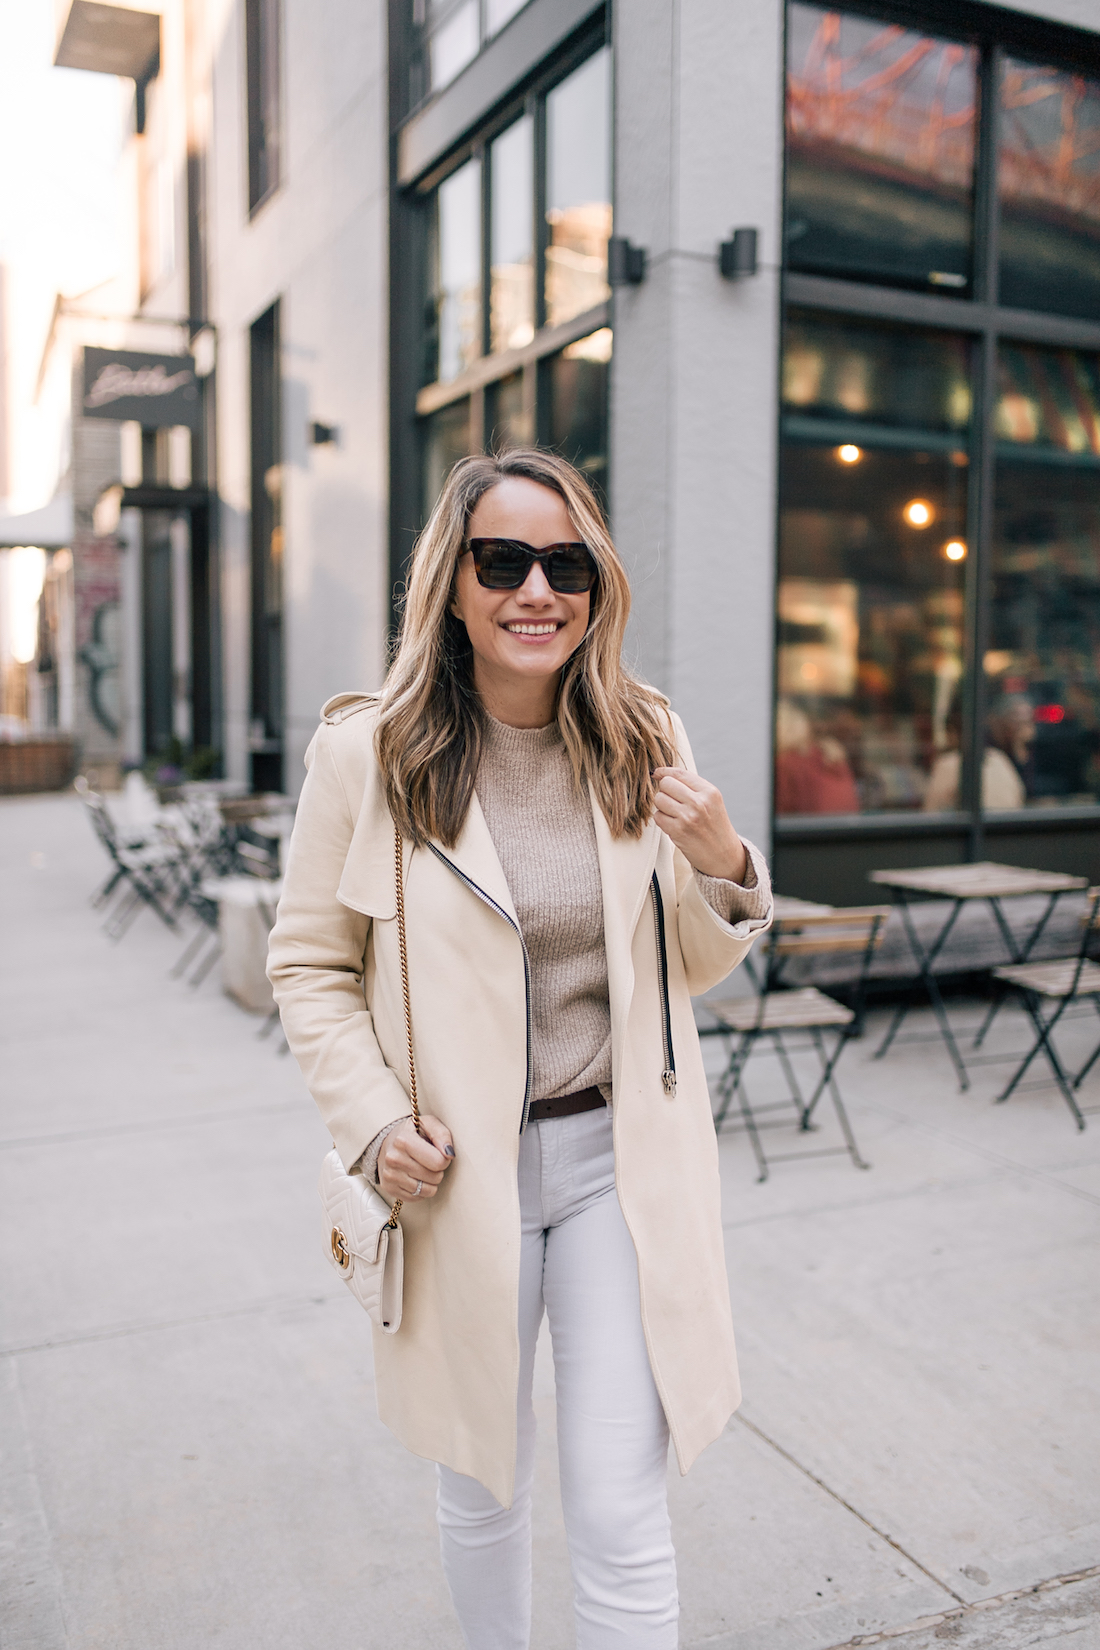 Outfit Details: Sandro Coat // ASOS Sweater // 7 for all Mankind Jeans // J.Crew Belt // Celine Sunglasses // Gucci Purse